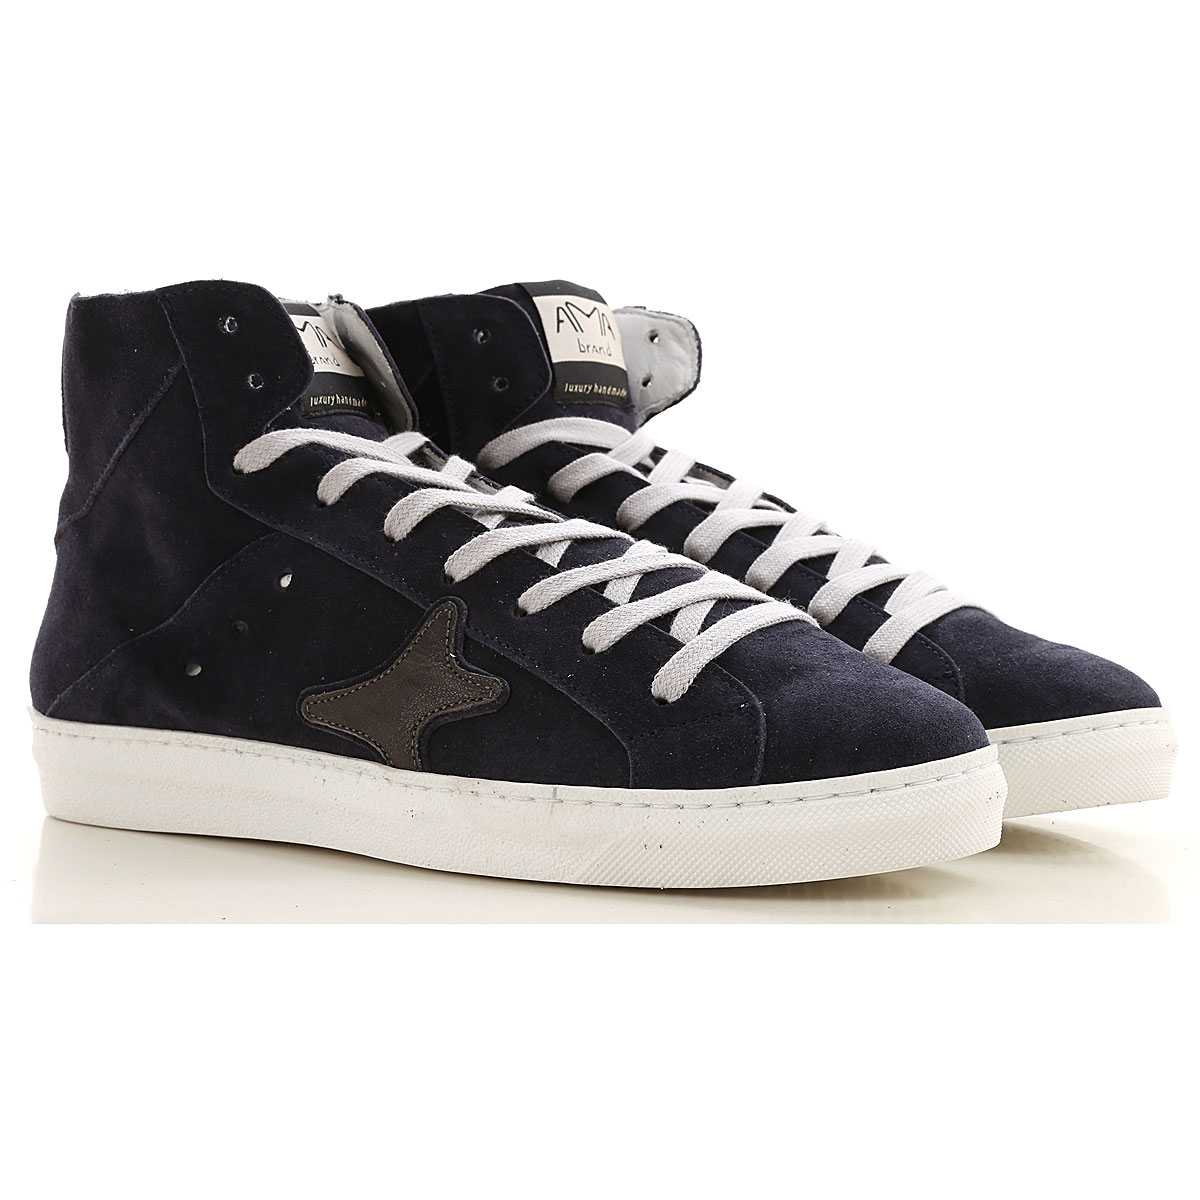 Ama Brand Sneakers for Men, Blue, Leather, 2019, EUR 40 - UK 6 - USA 7 EUR 42 - UK 8 - USA 8.5 EUR 43 - UK 9 - USA 9.5 EUR 44 - UK 9.5 - USA 10 EUR 45